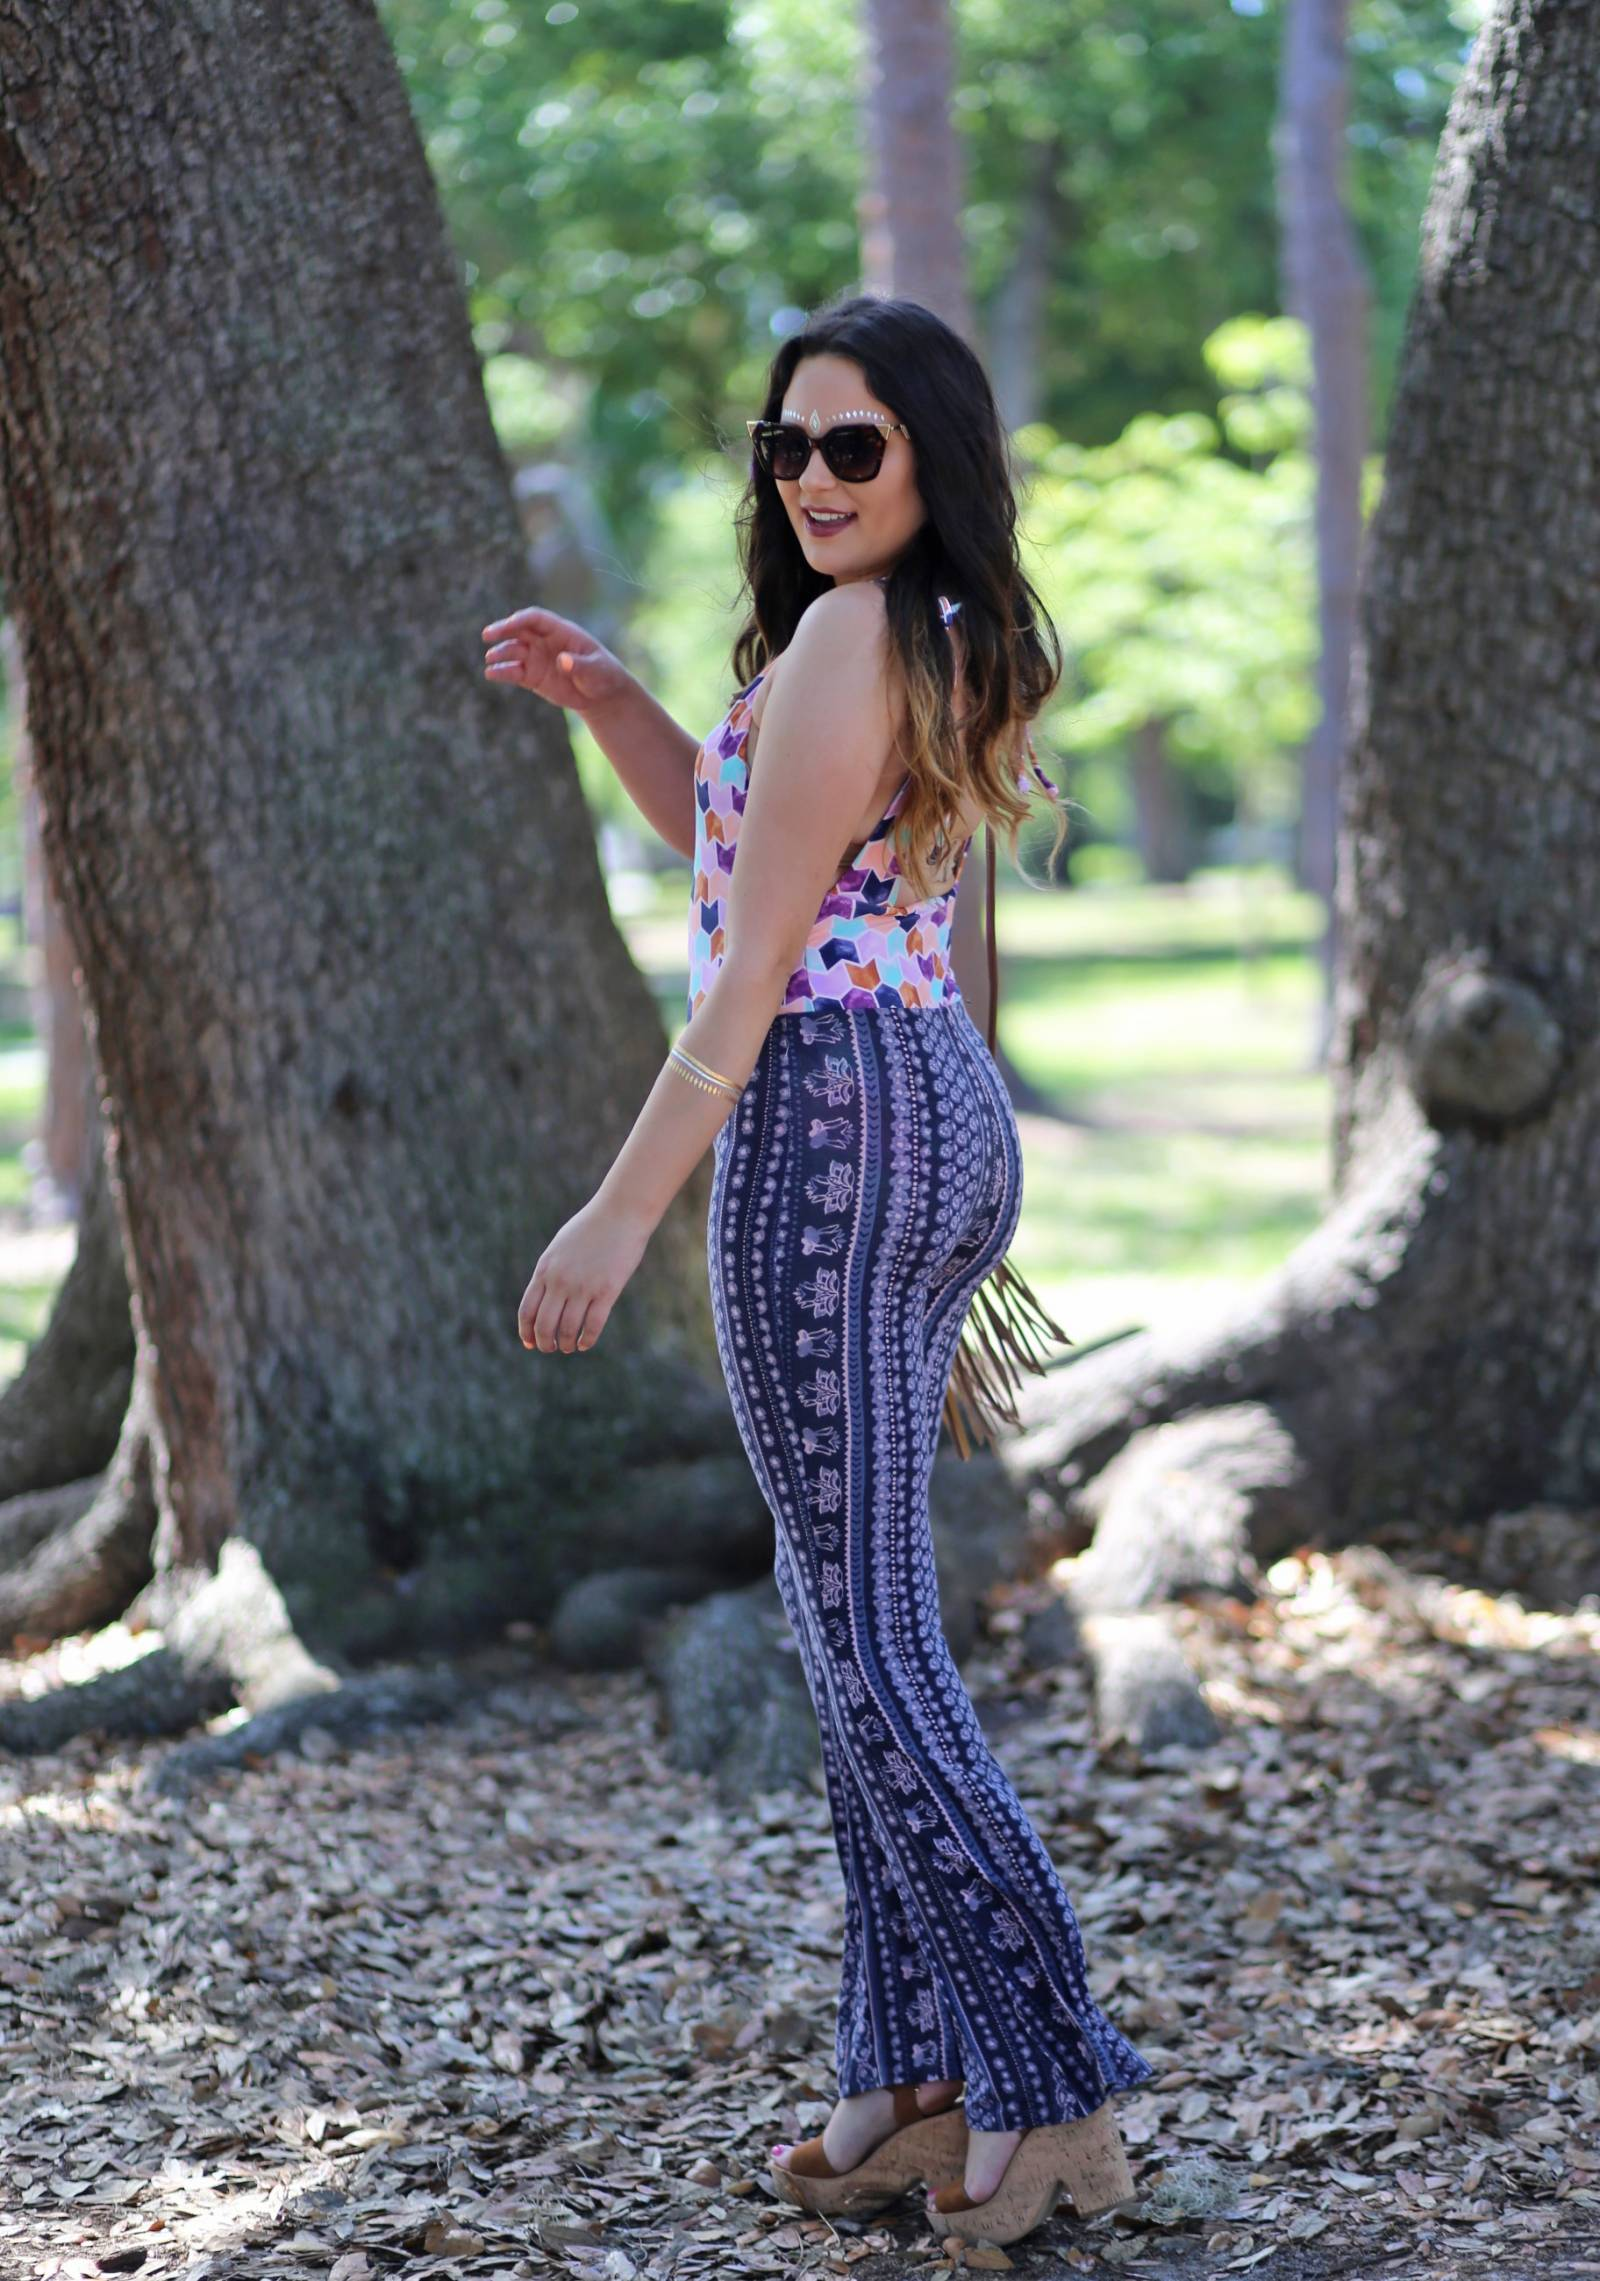 how to style flared pants | festival outfit ideas | Target | Target fashion | beauty blogger Mash Elle | boho style | festival outfits | festival style coachella outfit ideas